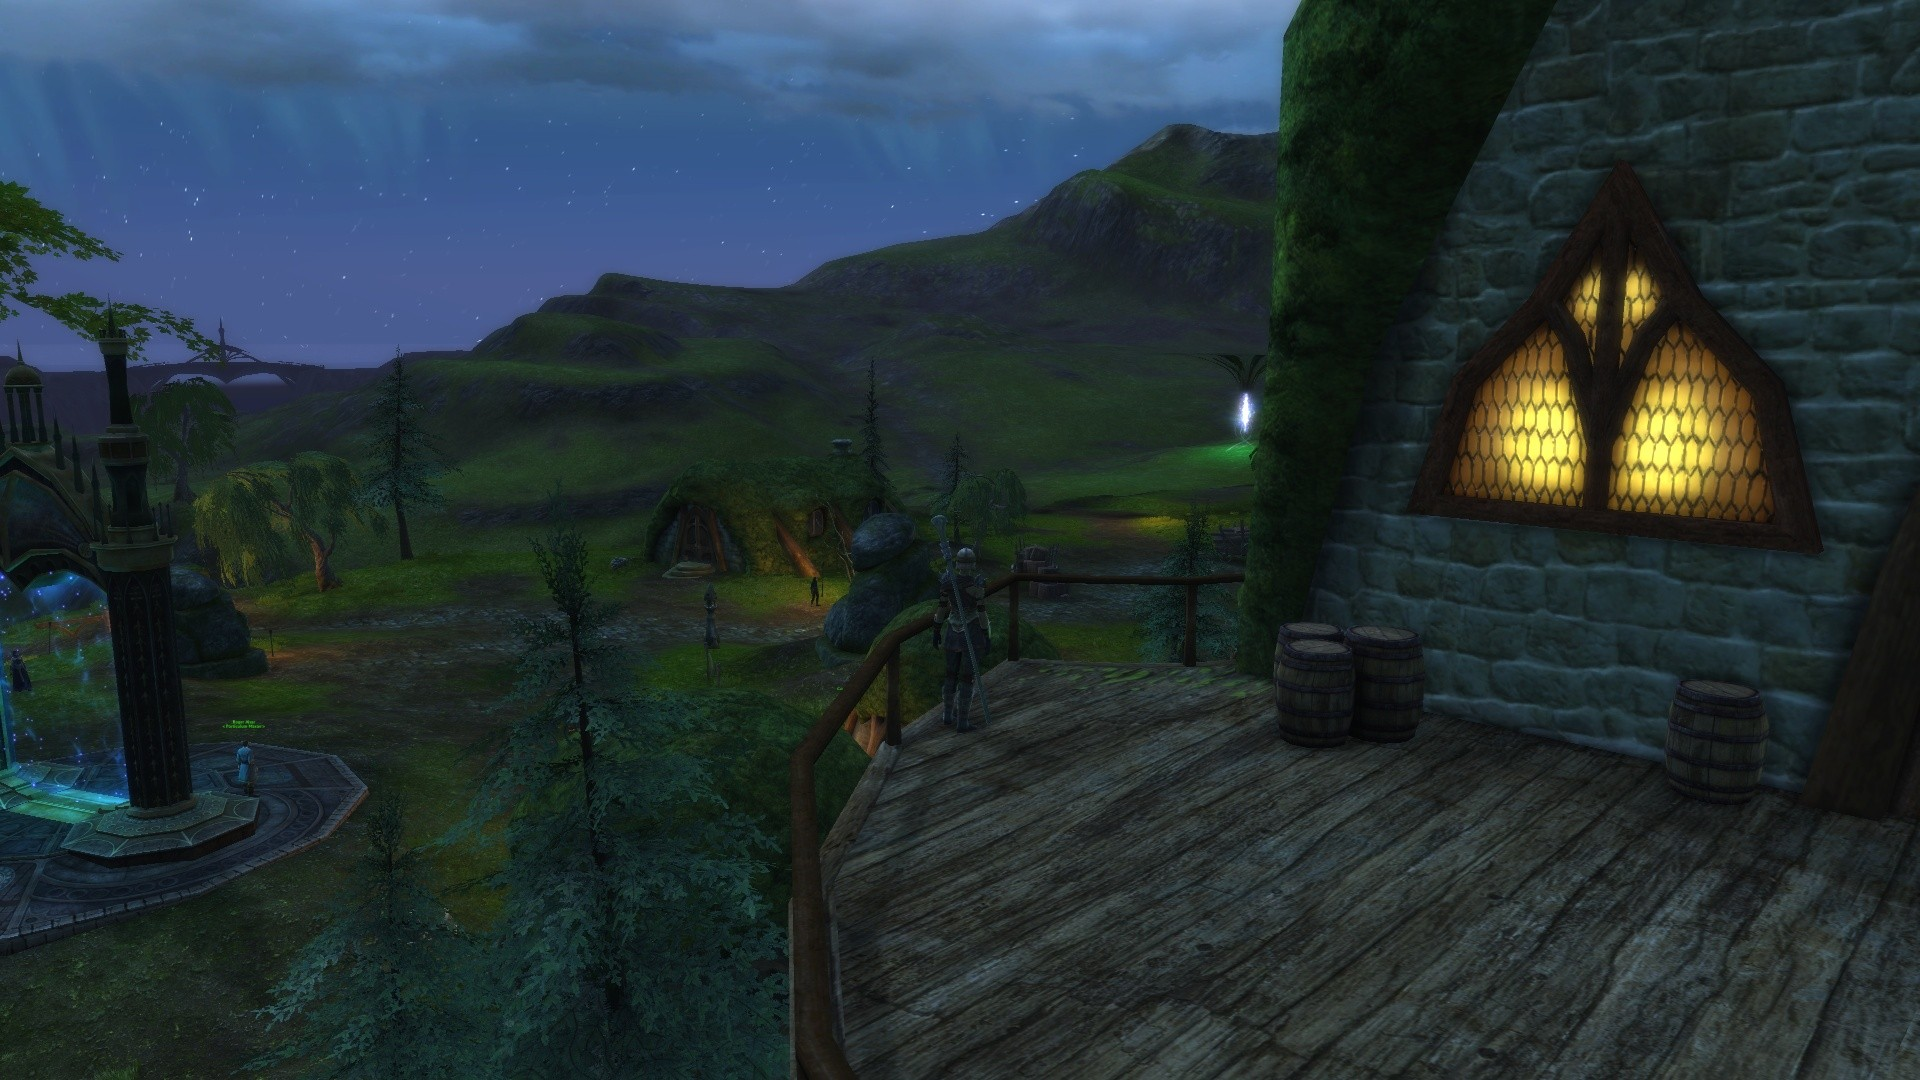 Rift - Nice quiet evening. Stars on the horizon and a tear happening on down the road.